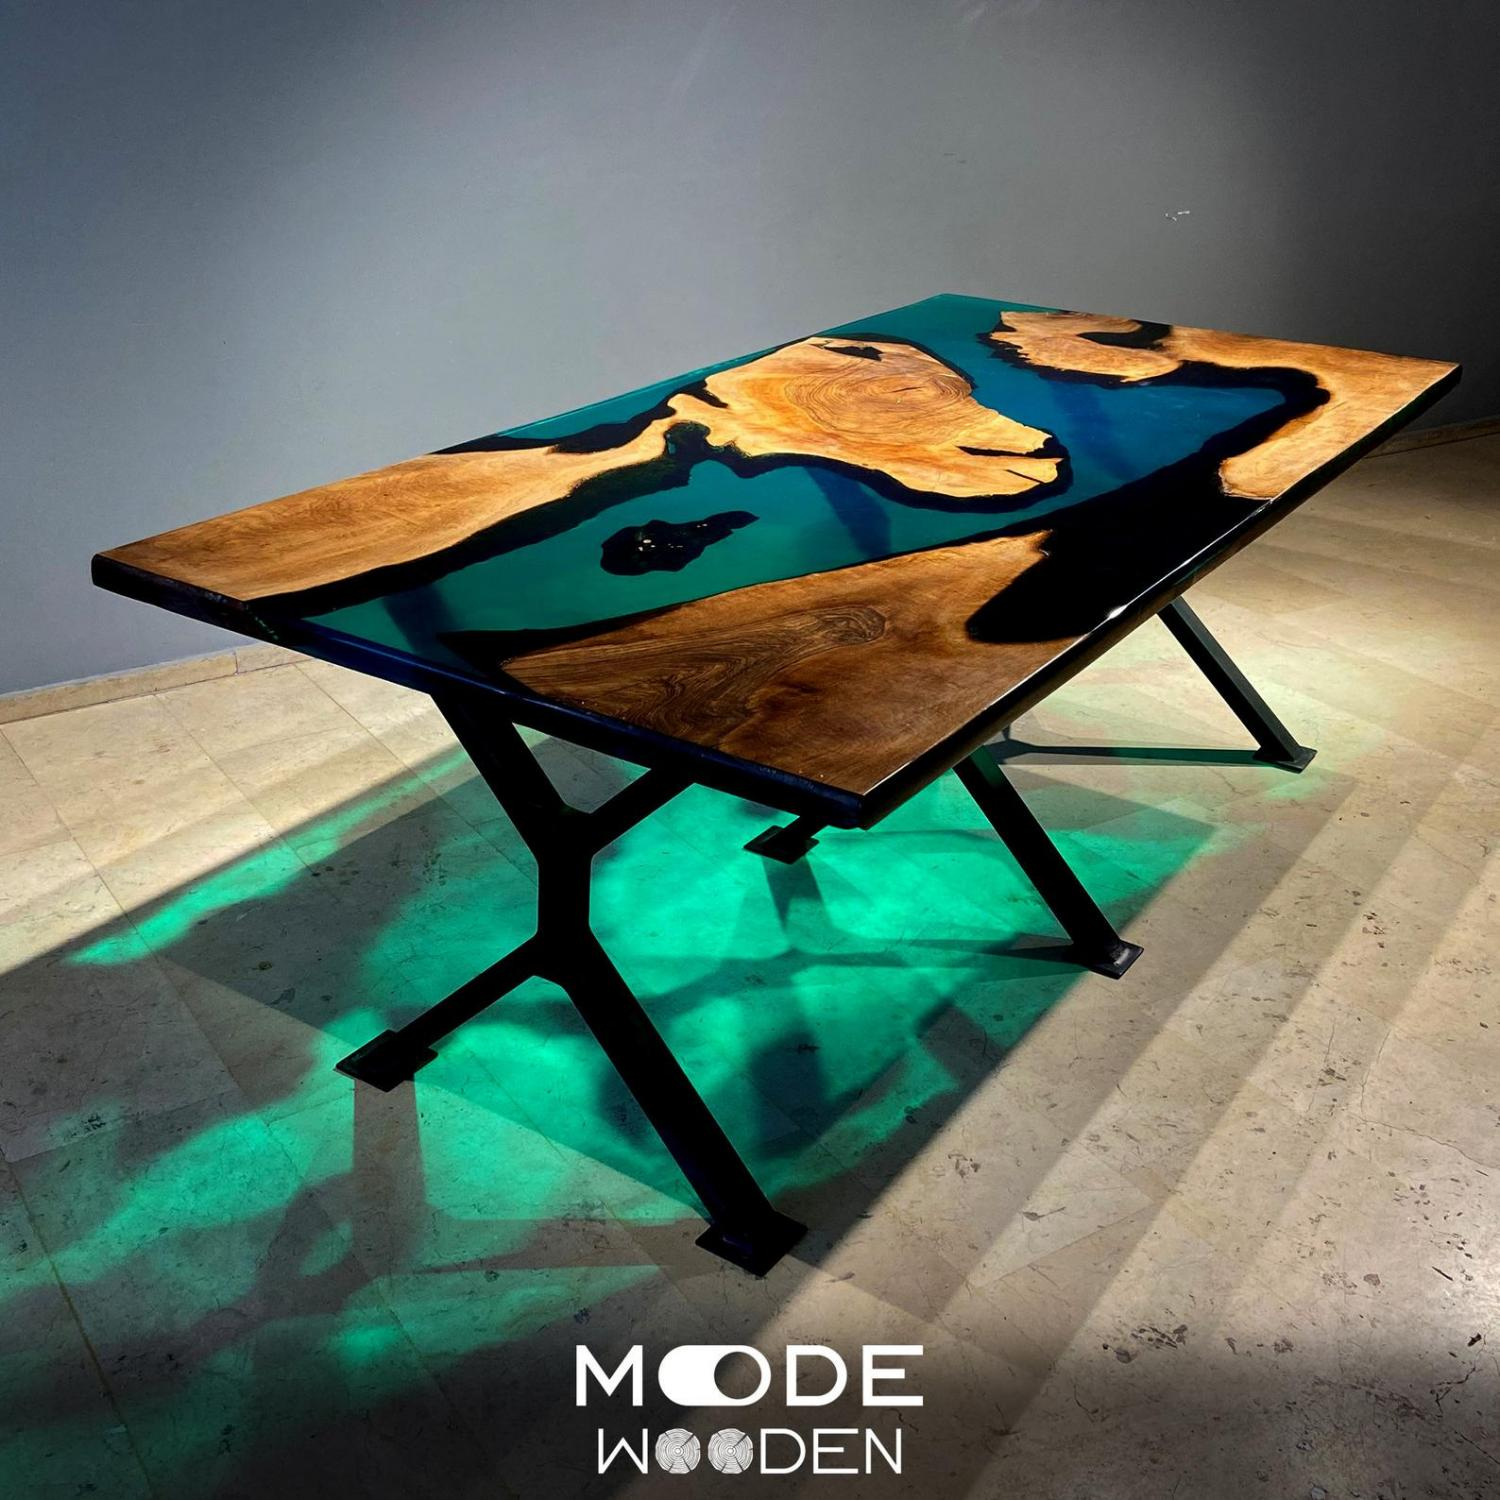 An incredible epoxy/resin table made with walnut wood and resembles islands in a deep blue sea